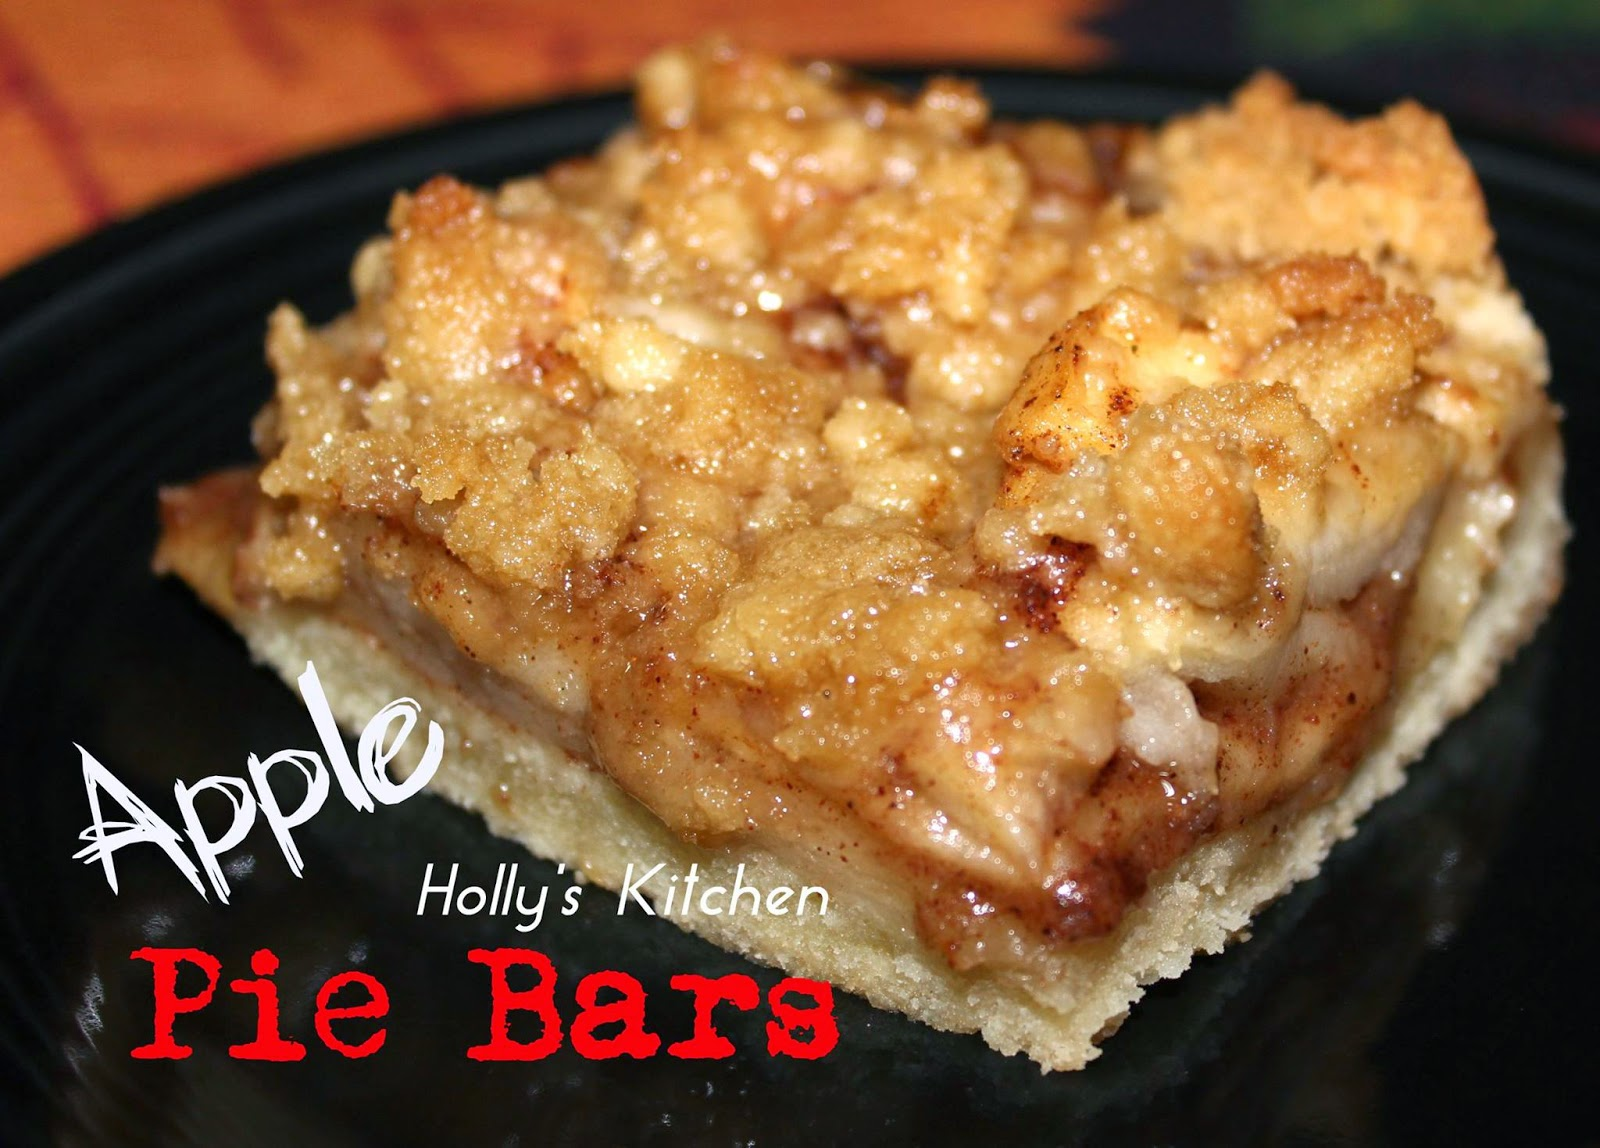 Weightloss, Recipes and DIY with Kari: Apple Pie Bars